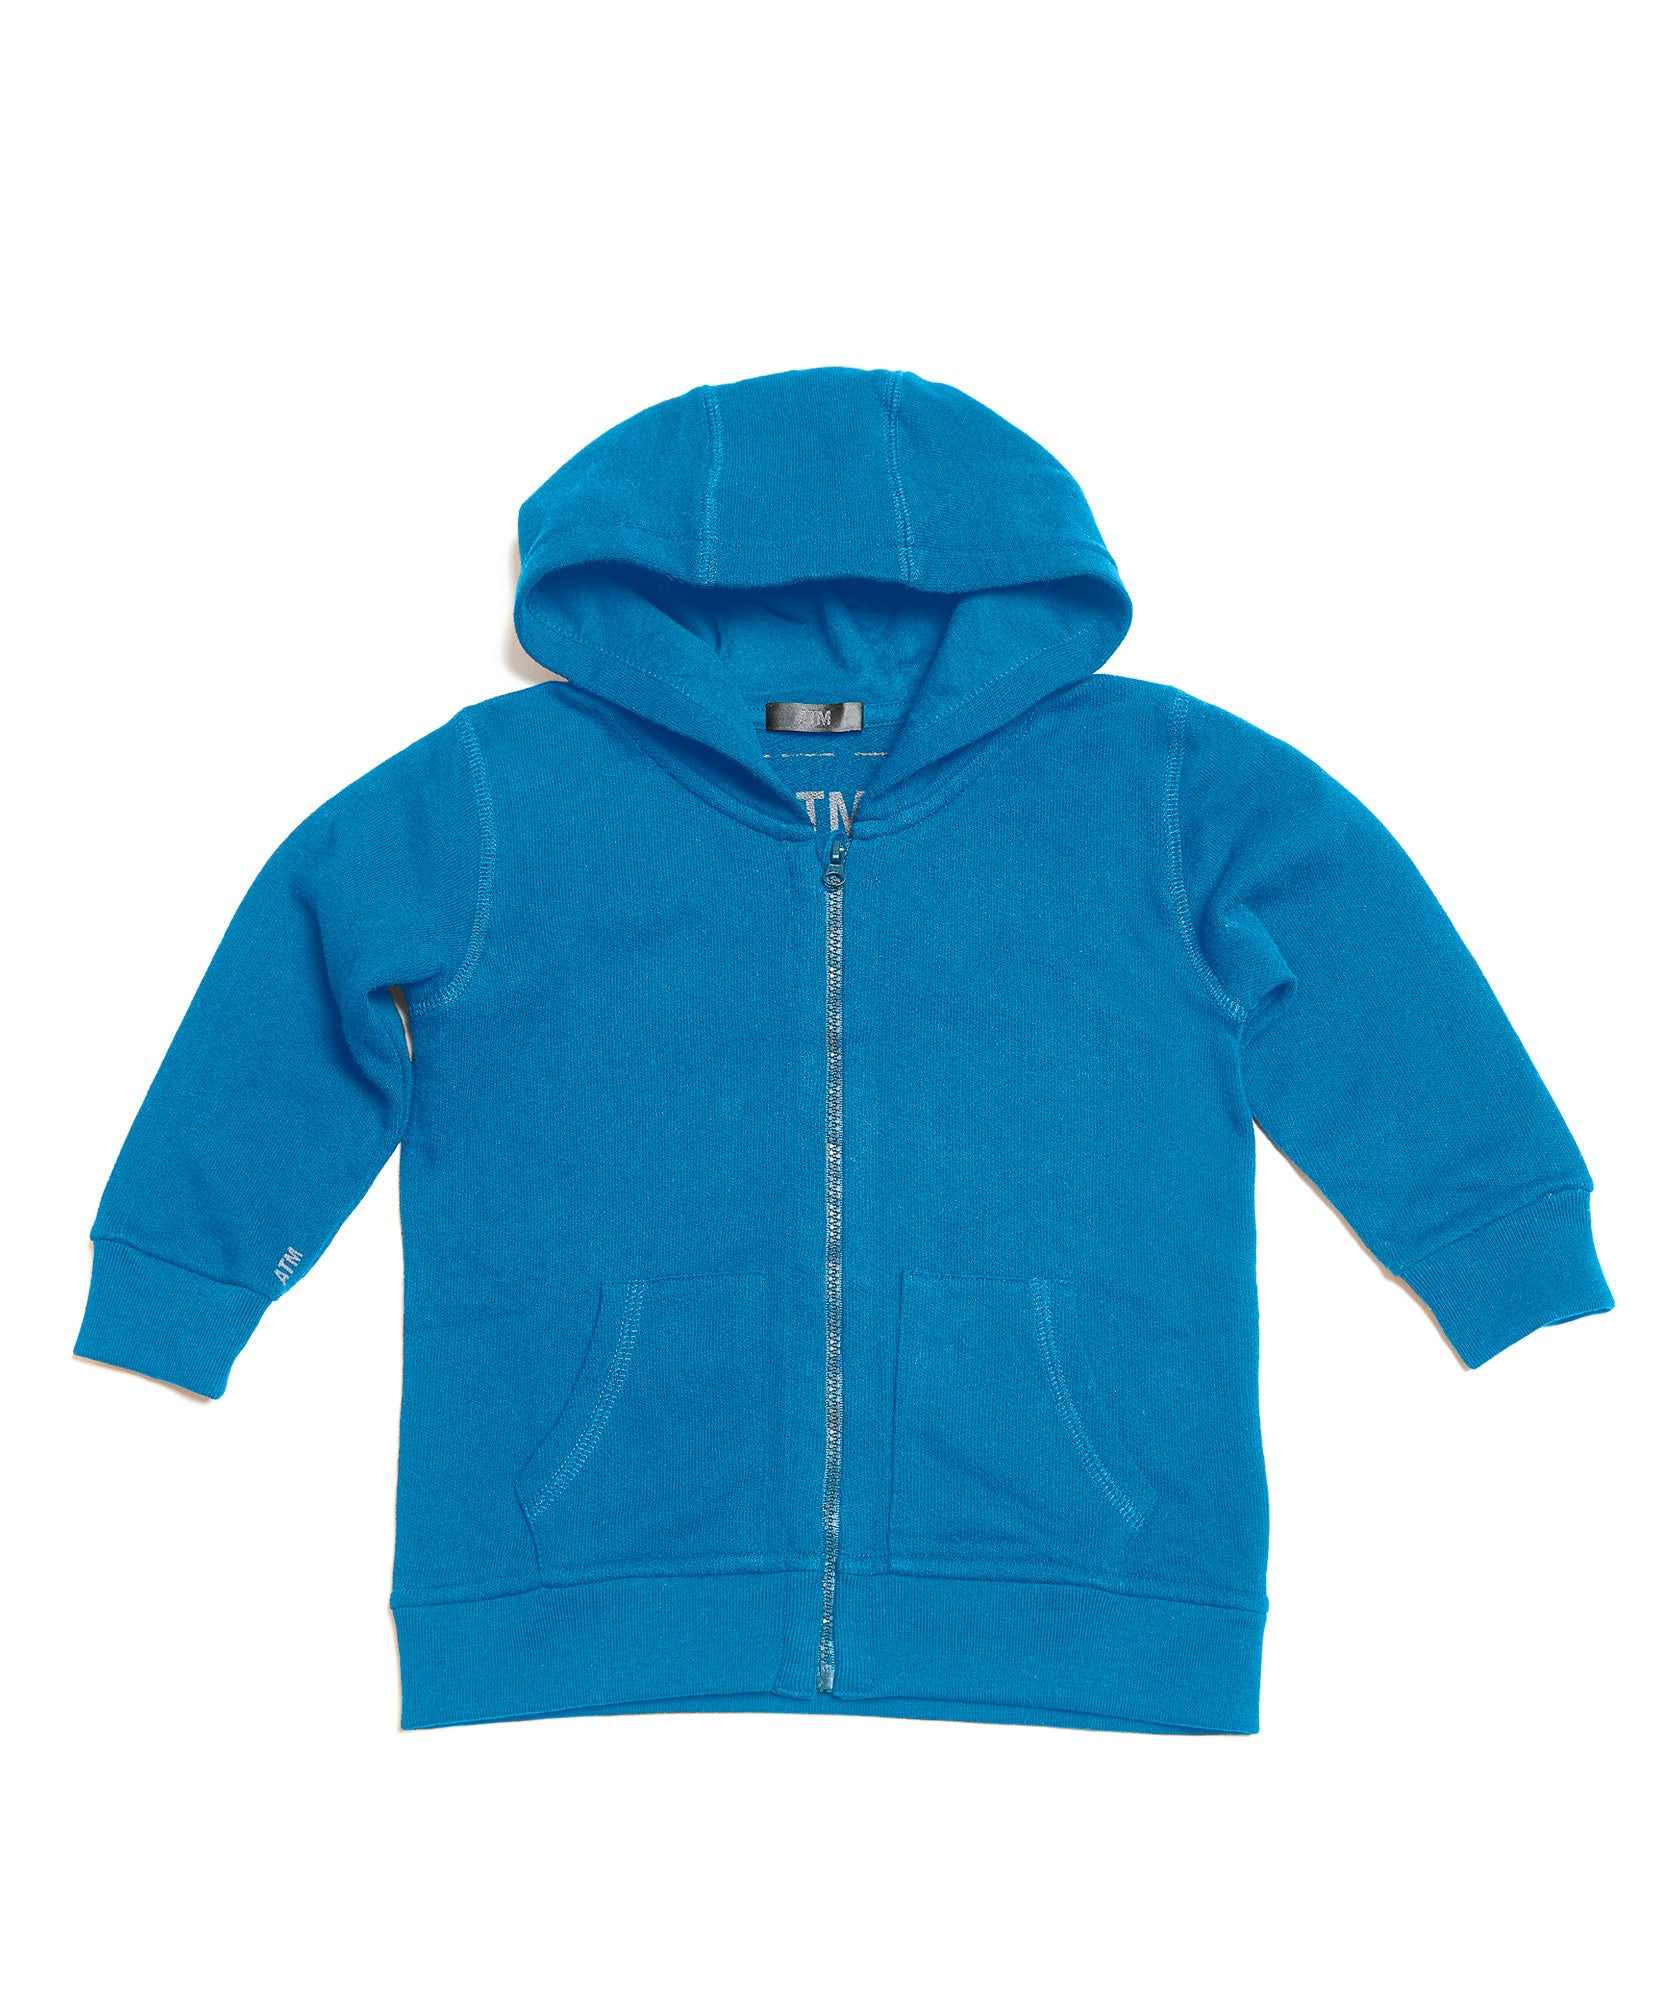 Cobalt Kids French Terry Zip-Up Hoodie - Kid's Cotton Hoodie Tee by ATM Anthony Thomas Melillo